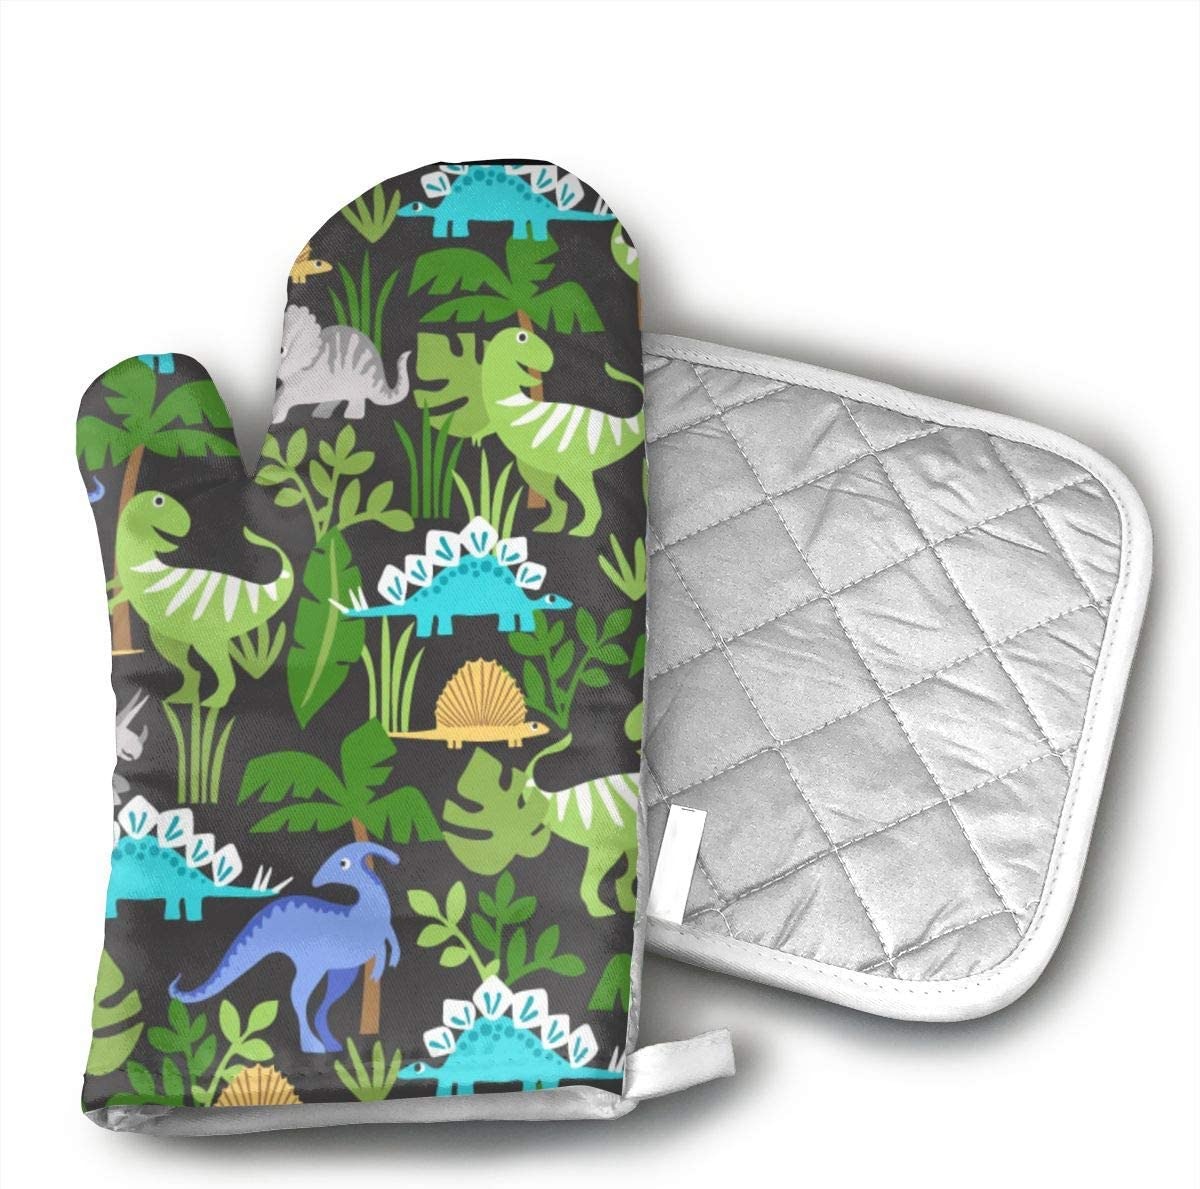 HGUIDHG Dino Oven Mitts+Insulated Square Mat,Heat Resistant Kitchen Gloves Soft Insulated Deep Pockets, Non-Slip Handles